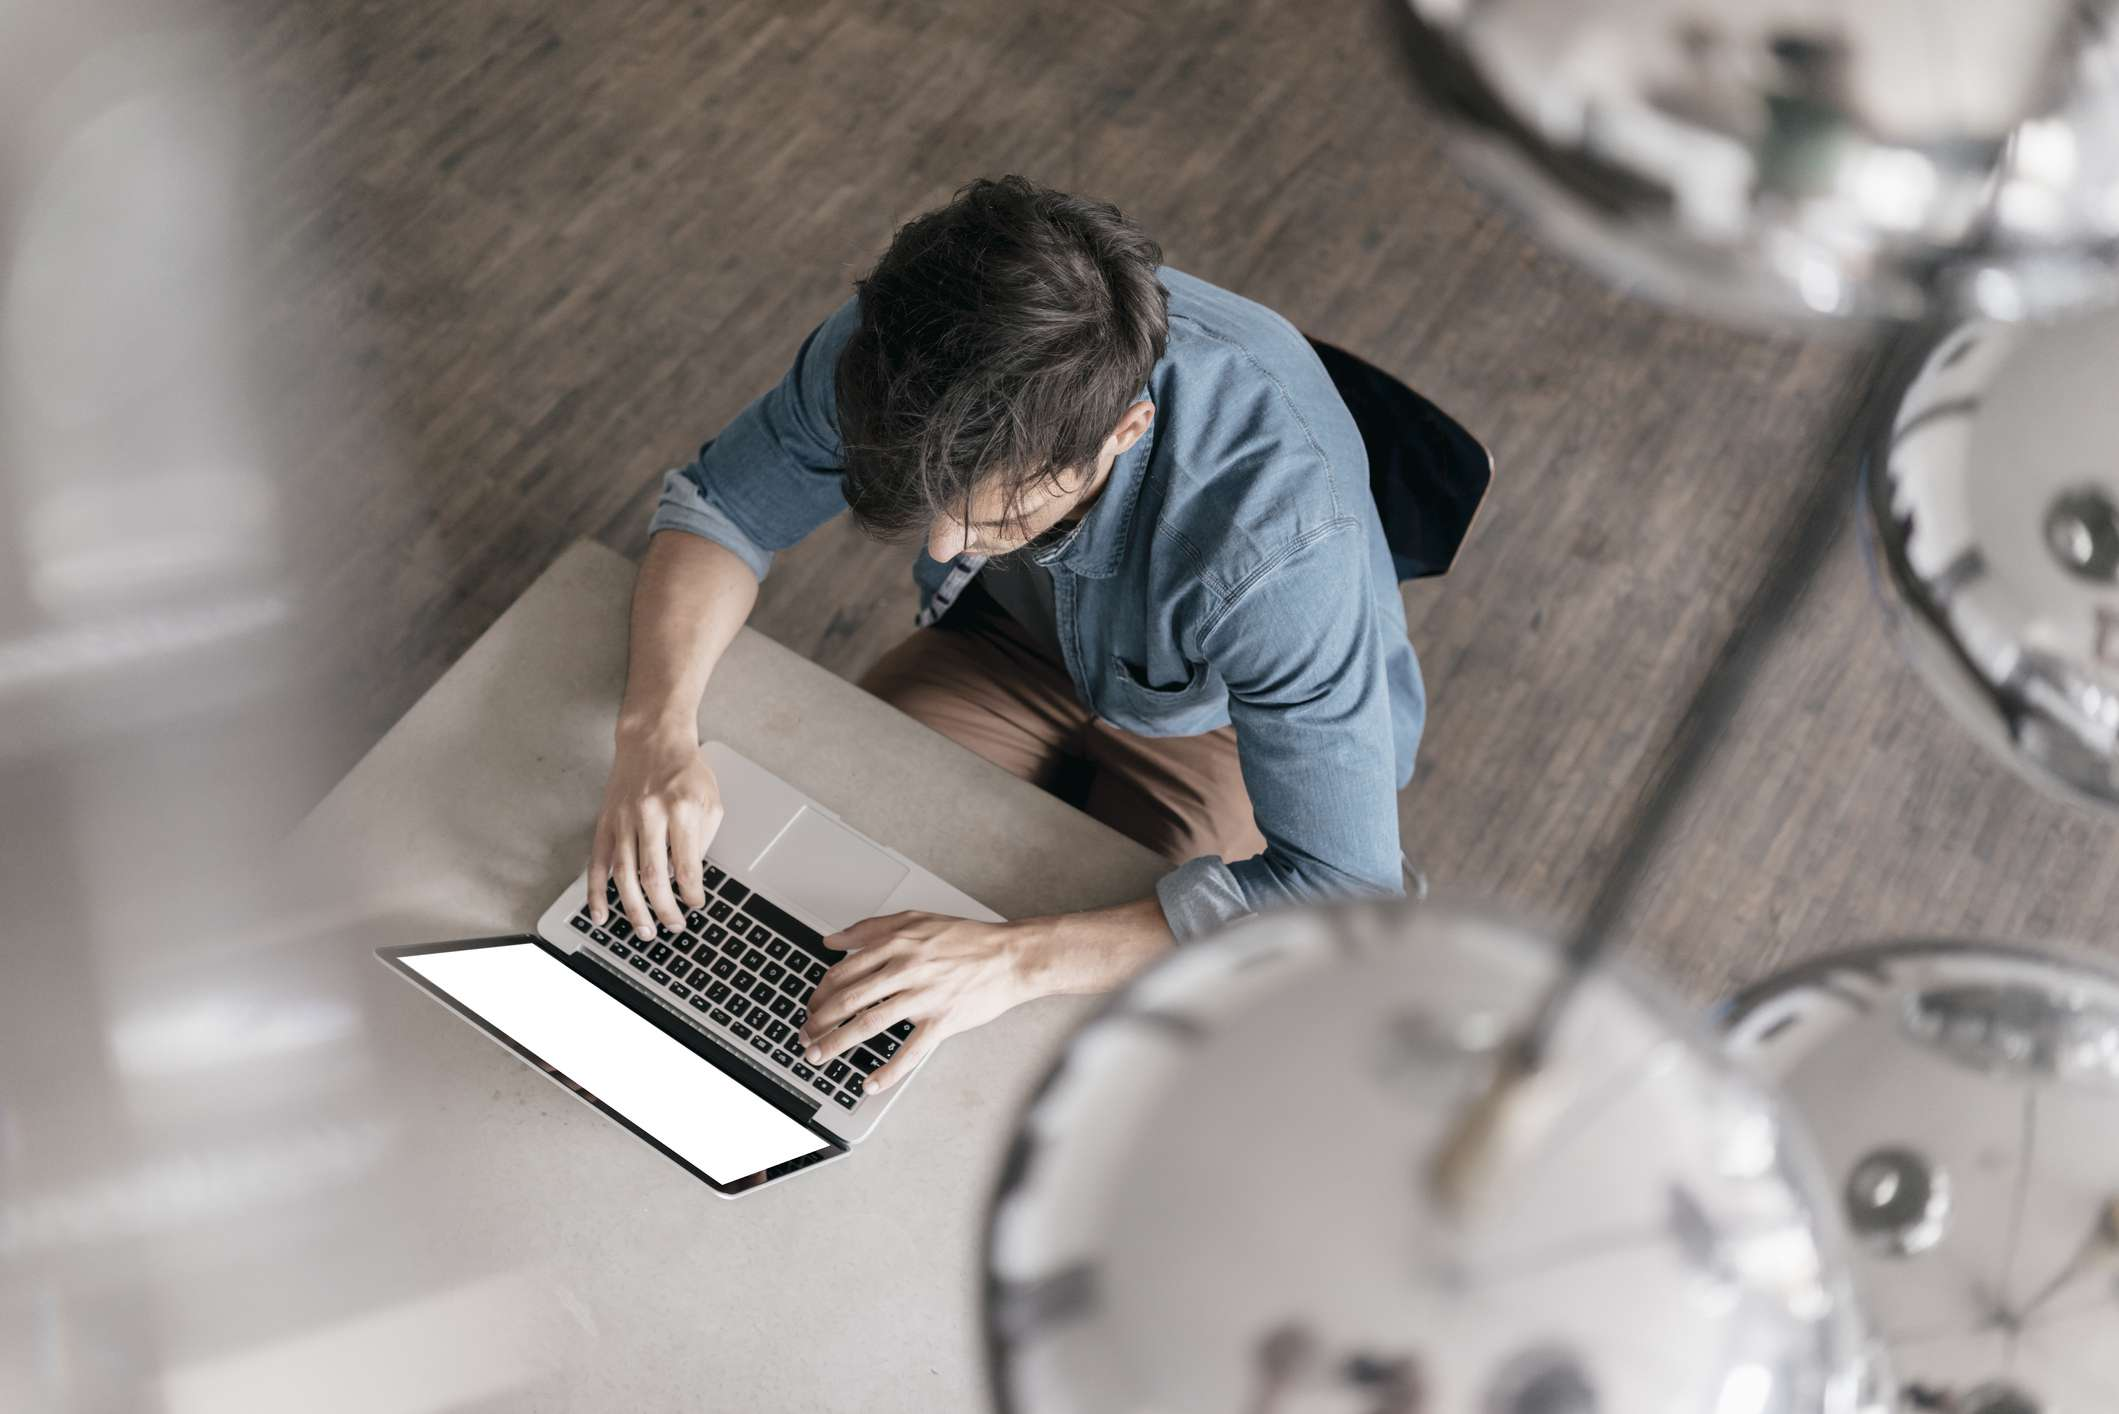 Young man working on laptop, top view